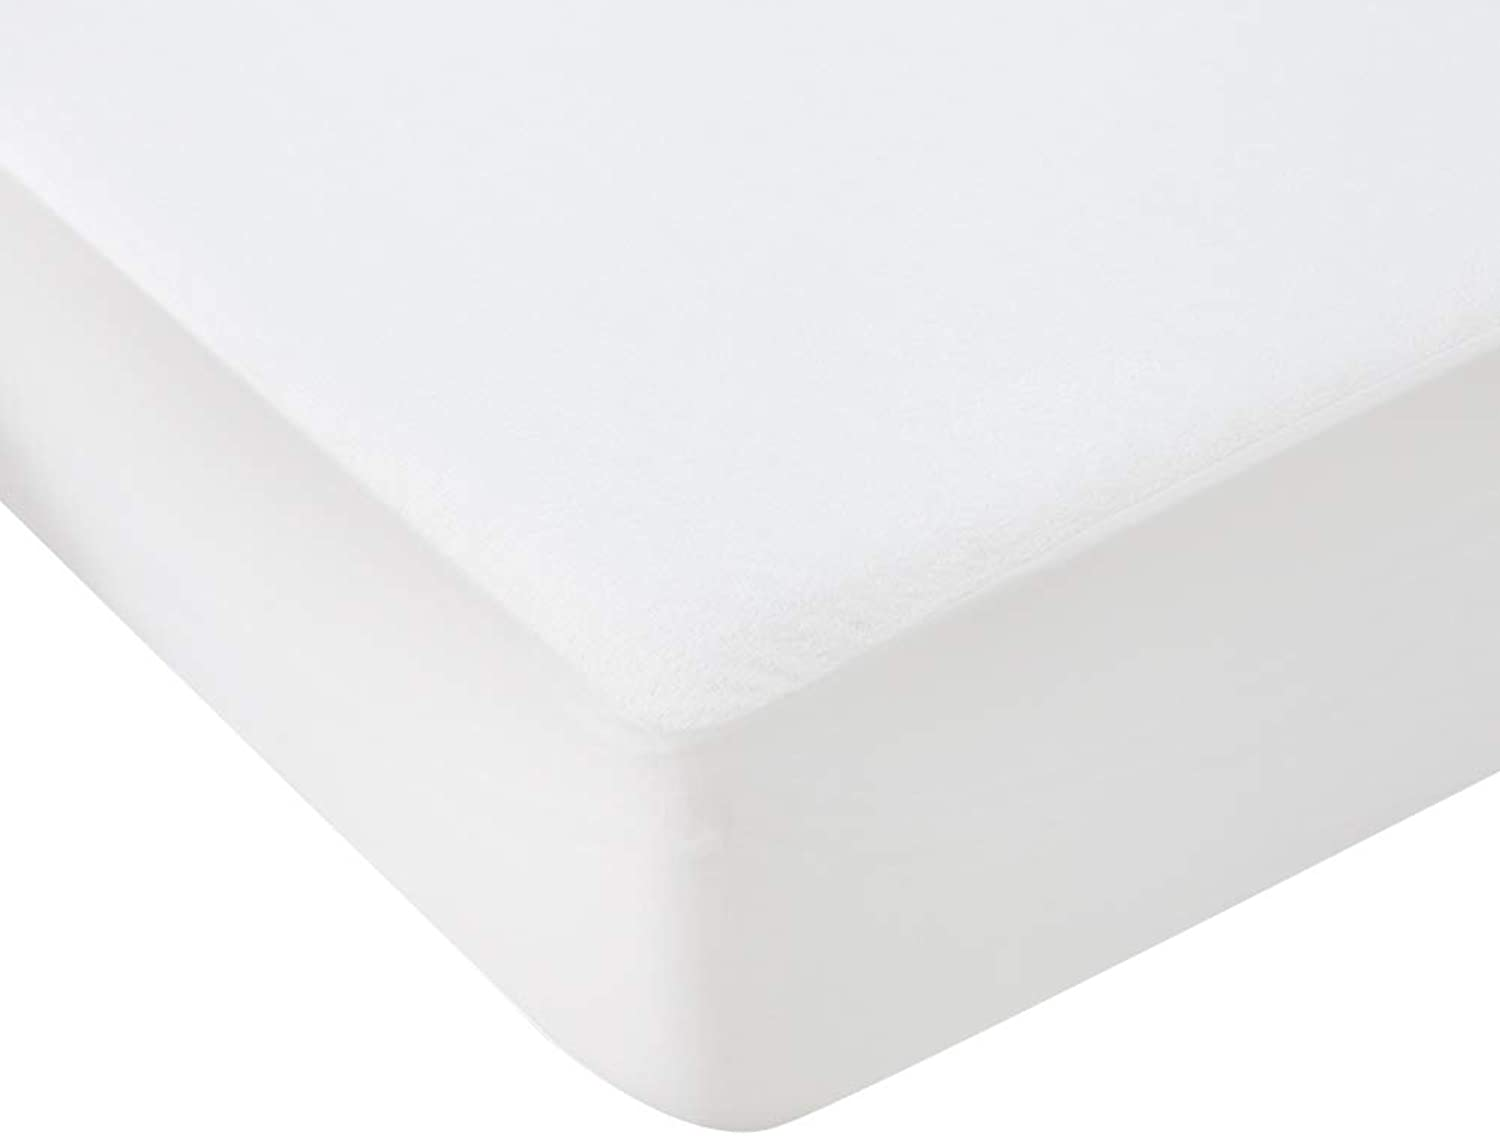 ZHAOHUI Mattress Predector Cotton Waterproof Noiseless Soft Skin-Friendly Moisture Absorption Dust-Proof Anti-Urine Breathable, 2 Sizes (color   White, Size   150X200cm)